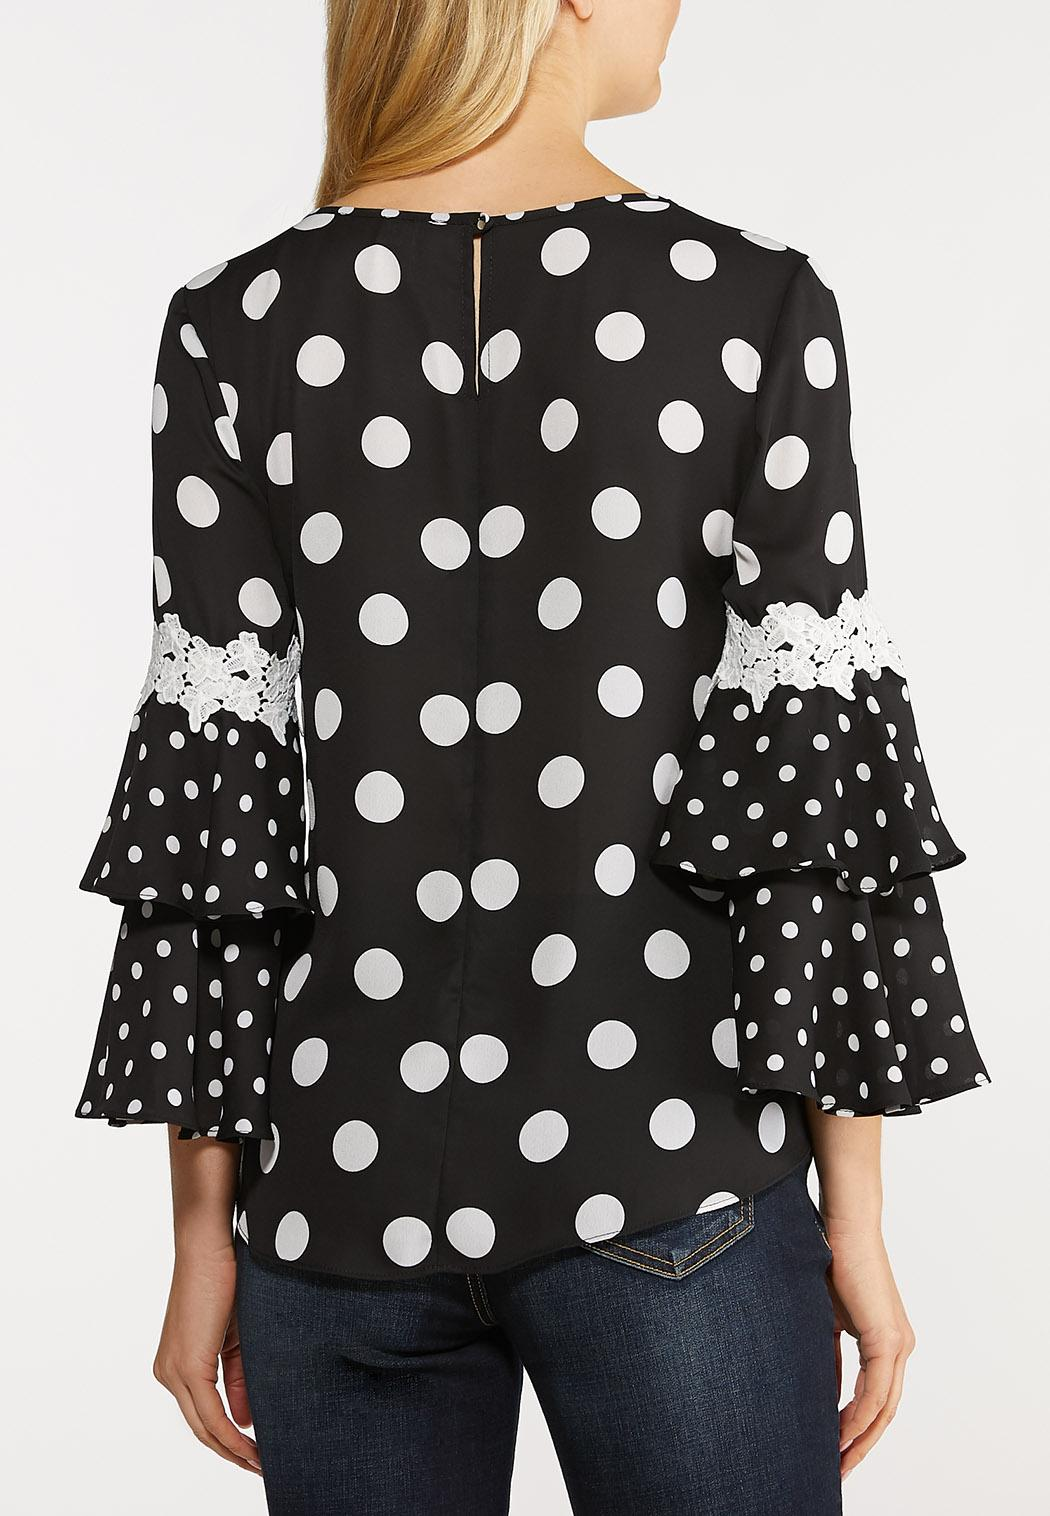 Plus Size Black And White Dotted Top (Item #44124915)